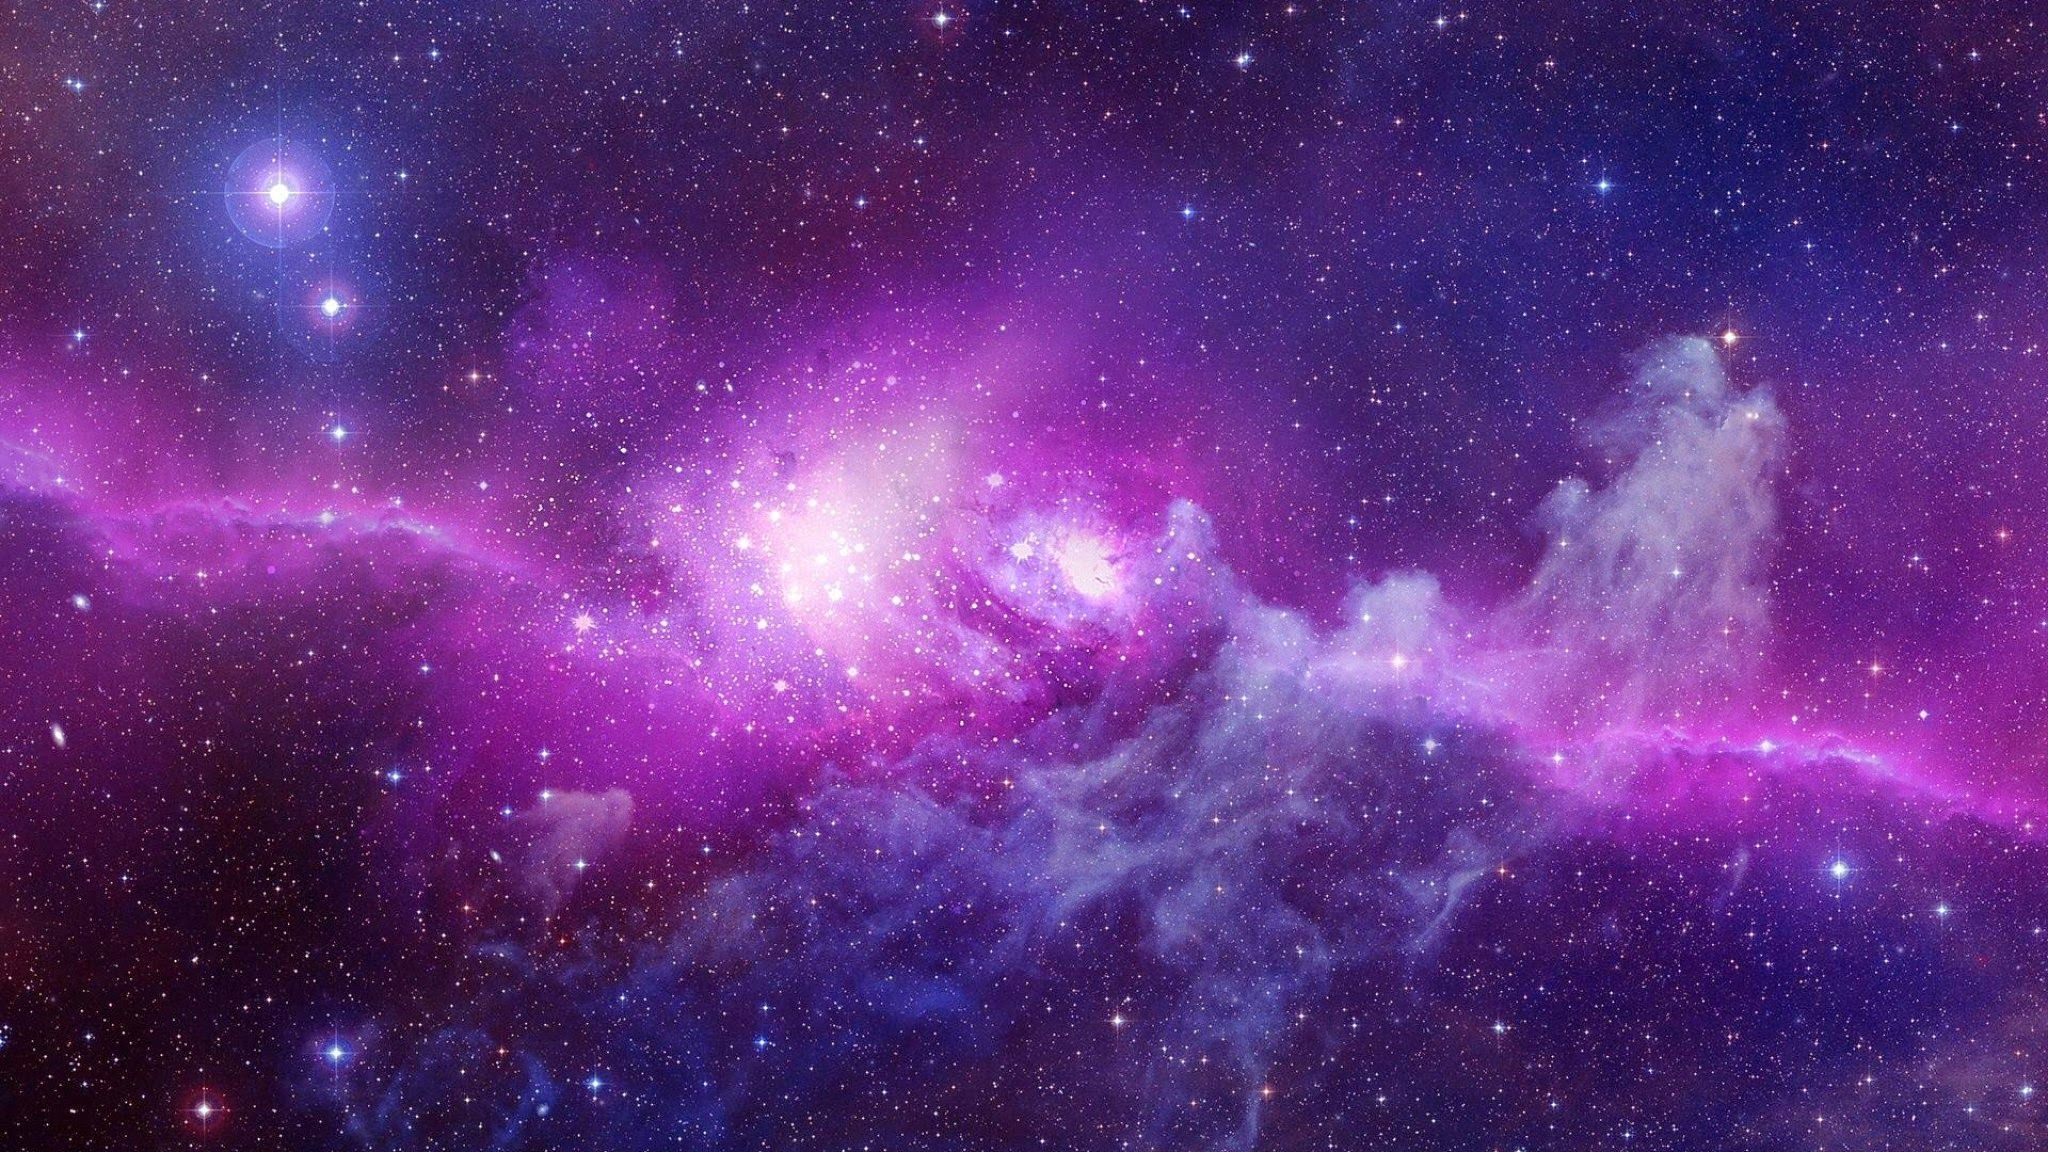 2048x1152 galaxy cute little things galaxy wallpaper for 2048x1152 wallpaper